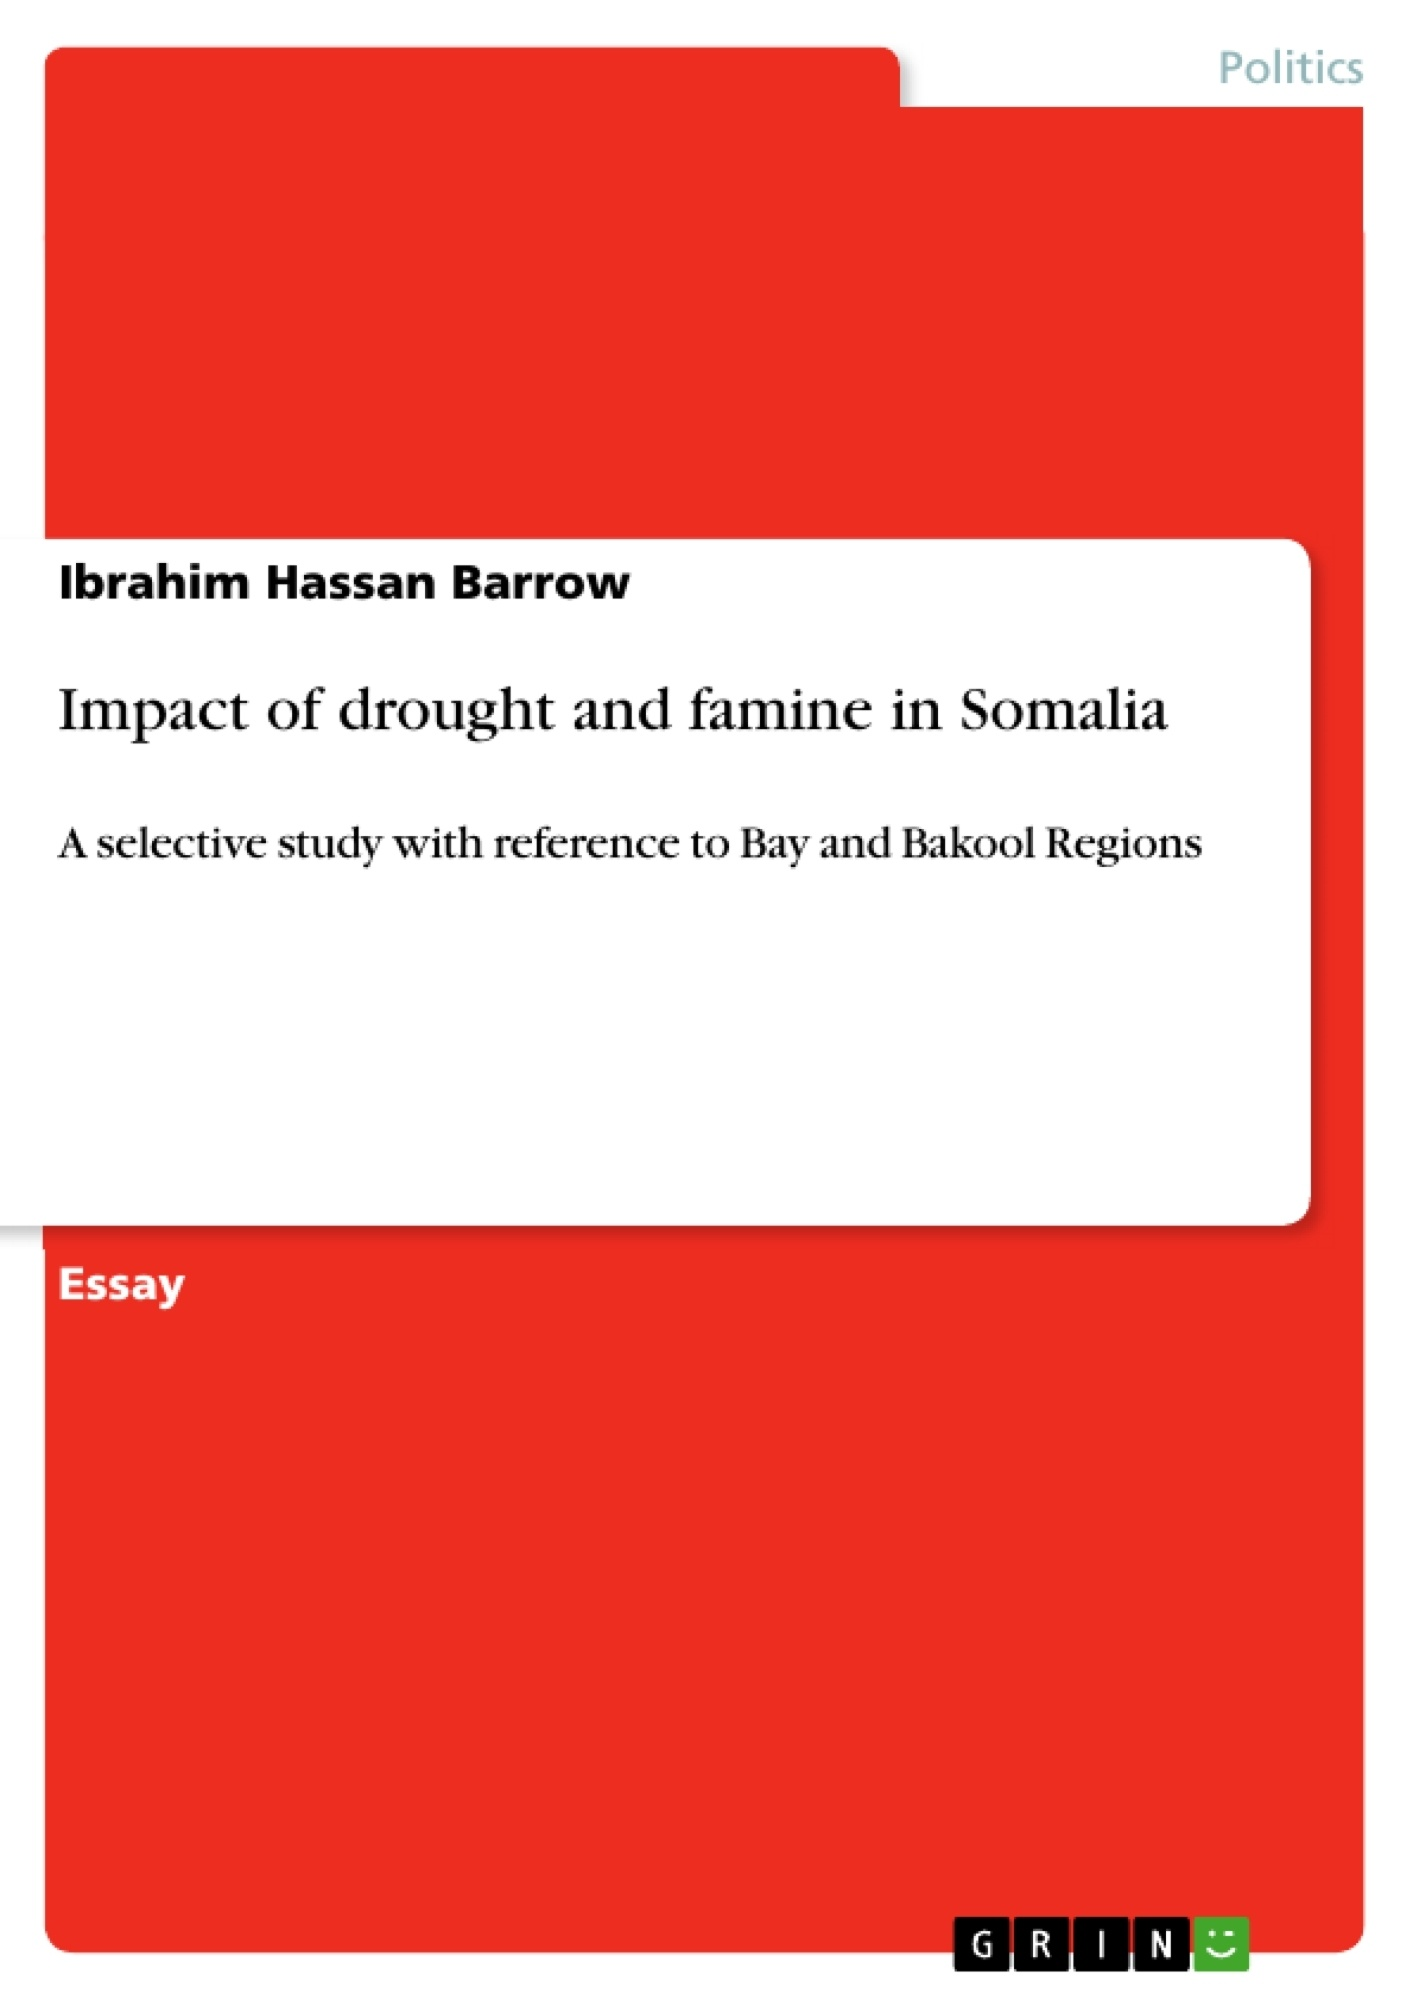 Impact Of Drought And Famine In Somalia  Publish Your Masters  Upload Your Own Papers Earn Money And Win An Iphone X